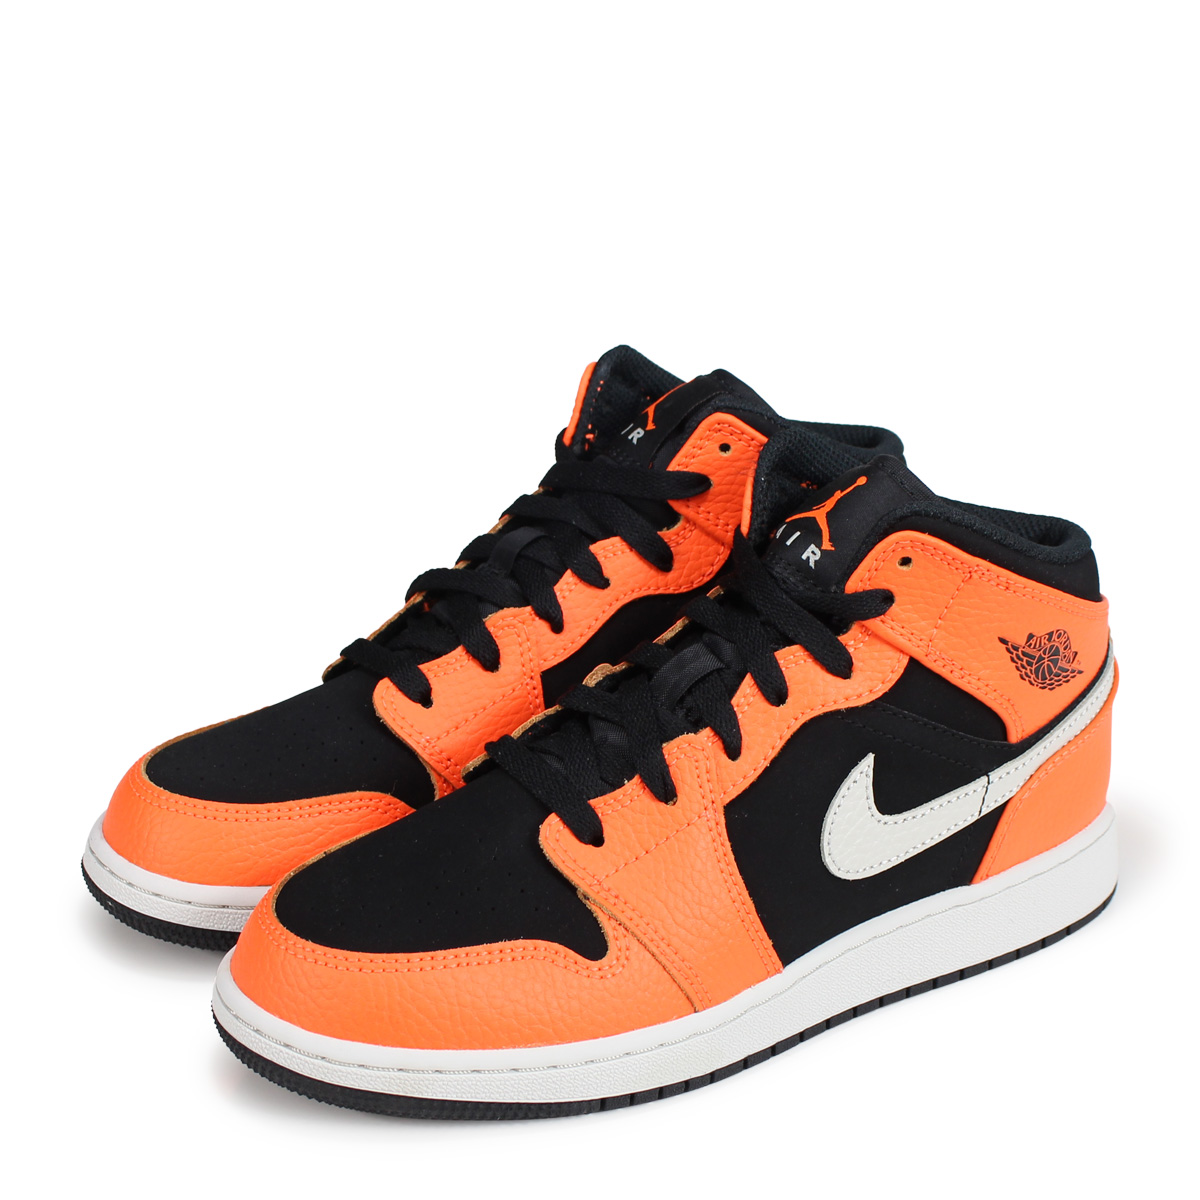 low priced f6af1 94c5b NIKE AIR JORDAN 1 MID GS Nike Air Jordan 1 Lady s sneakers 554,725-062  orange  load planned Shinnyu load in reservation product 10 15 containing    1810